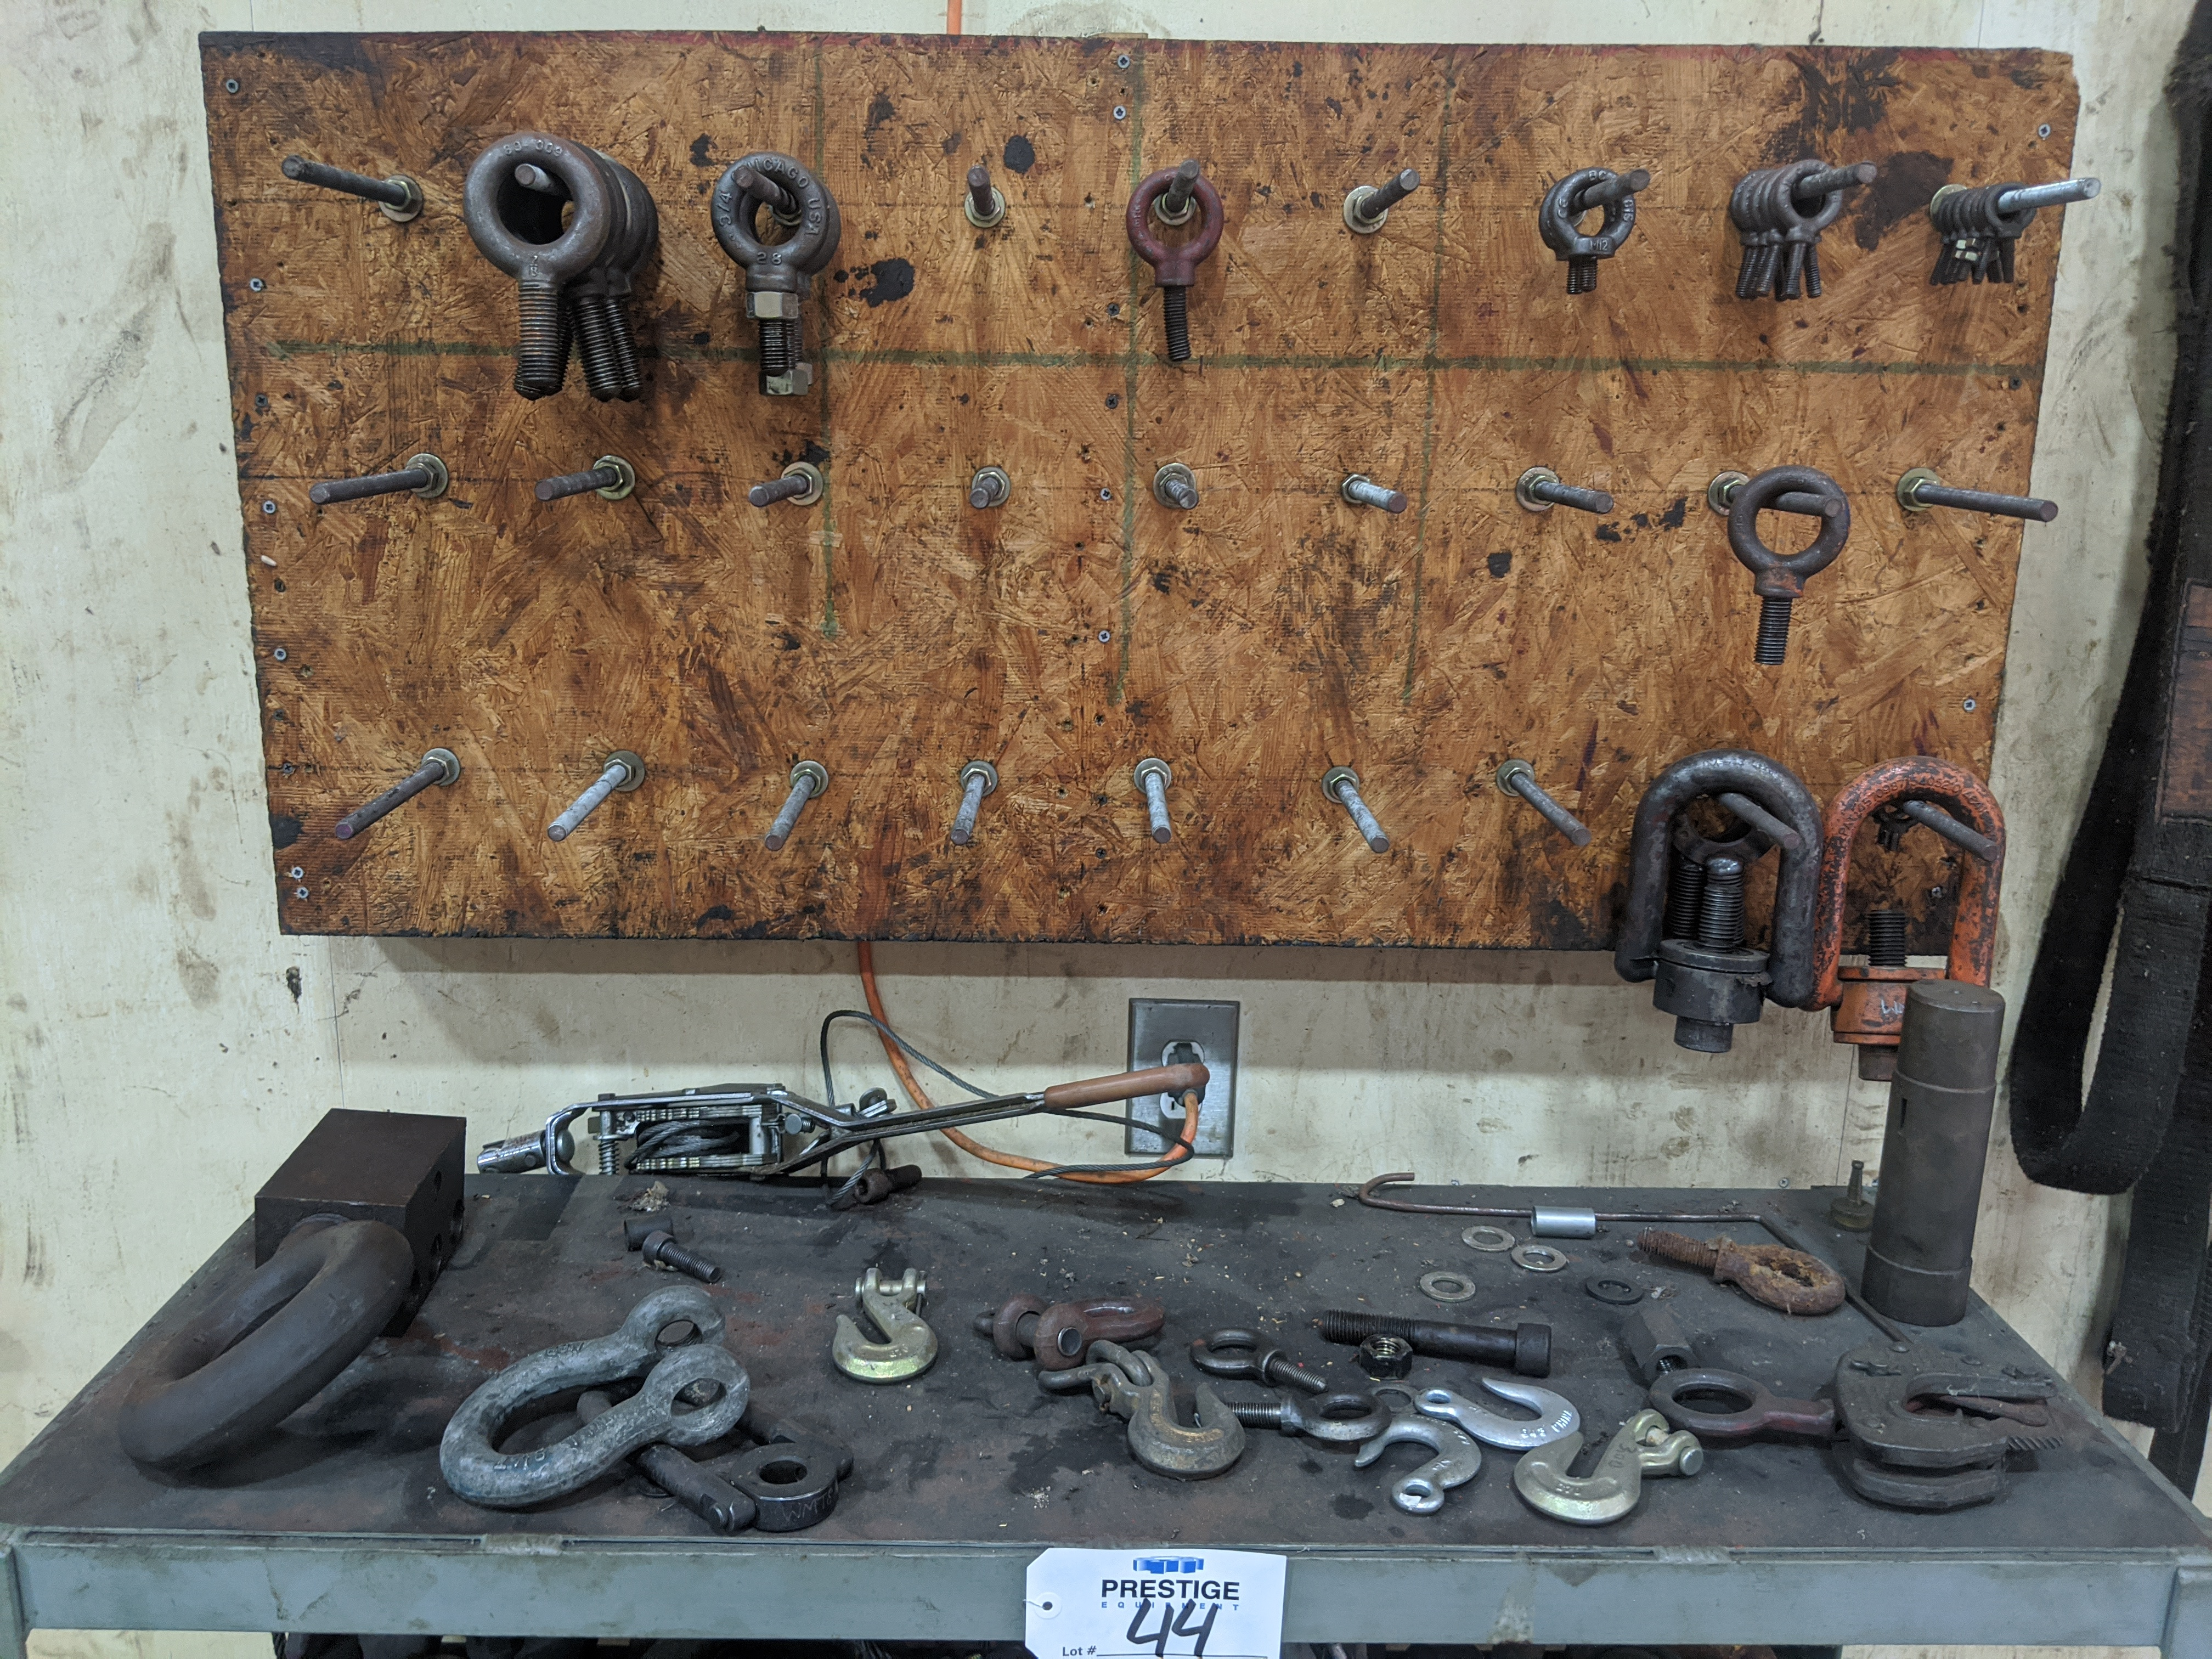 Lot 44 - 3-Tier Steel Shelving Unit with Contents of Assorted I-Bolts & Lifting Shackles